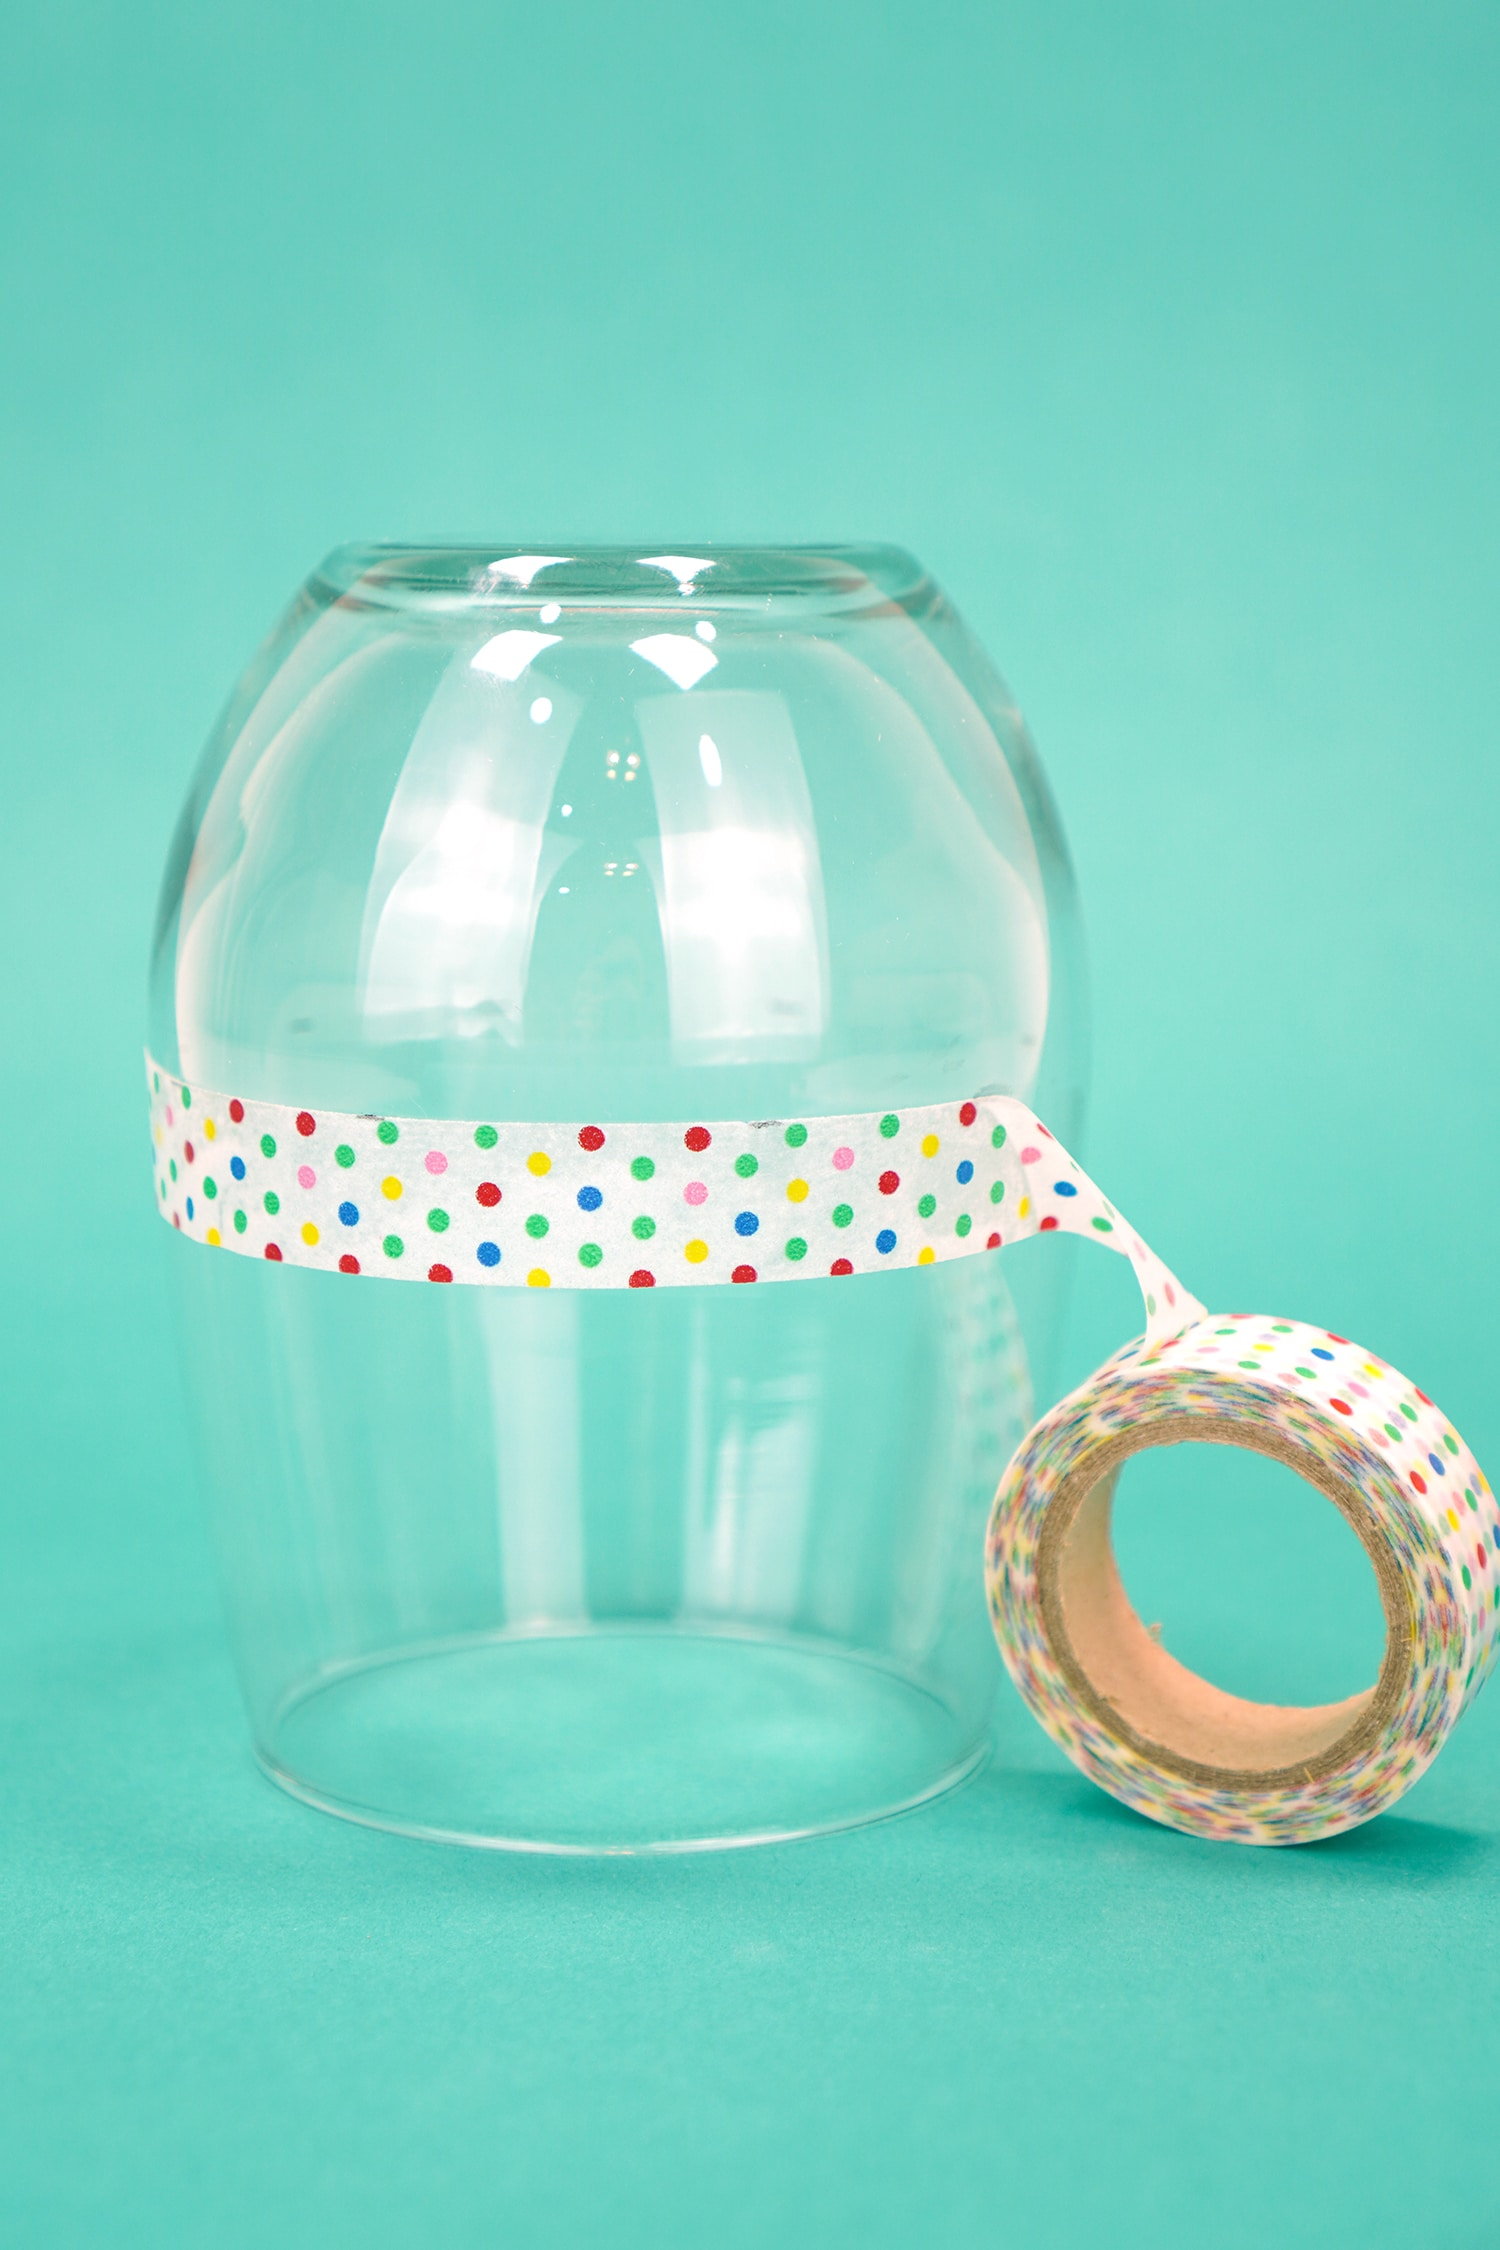 Upside down stemless wine glass on teal background with a ring of polka dot washi tape around glass